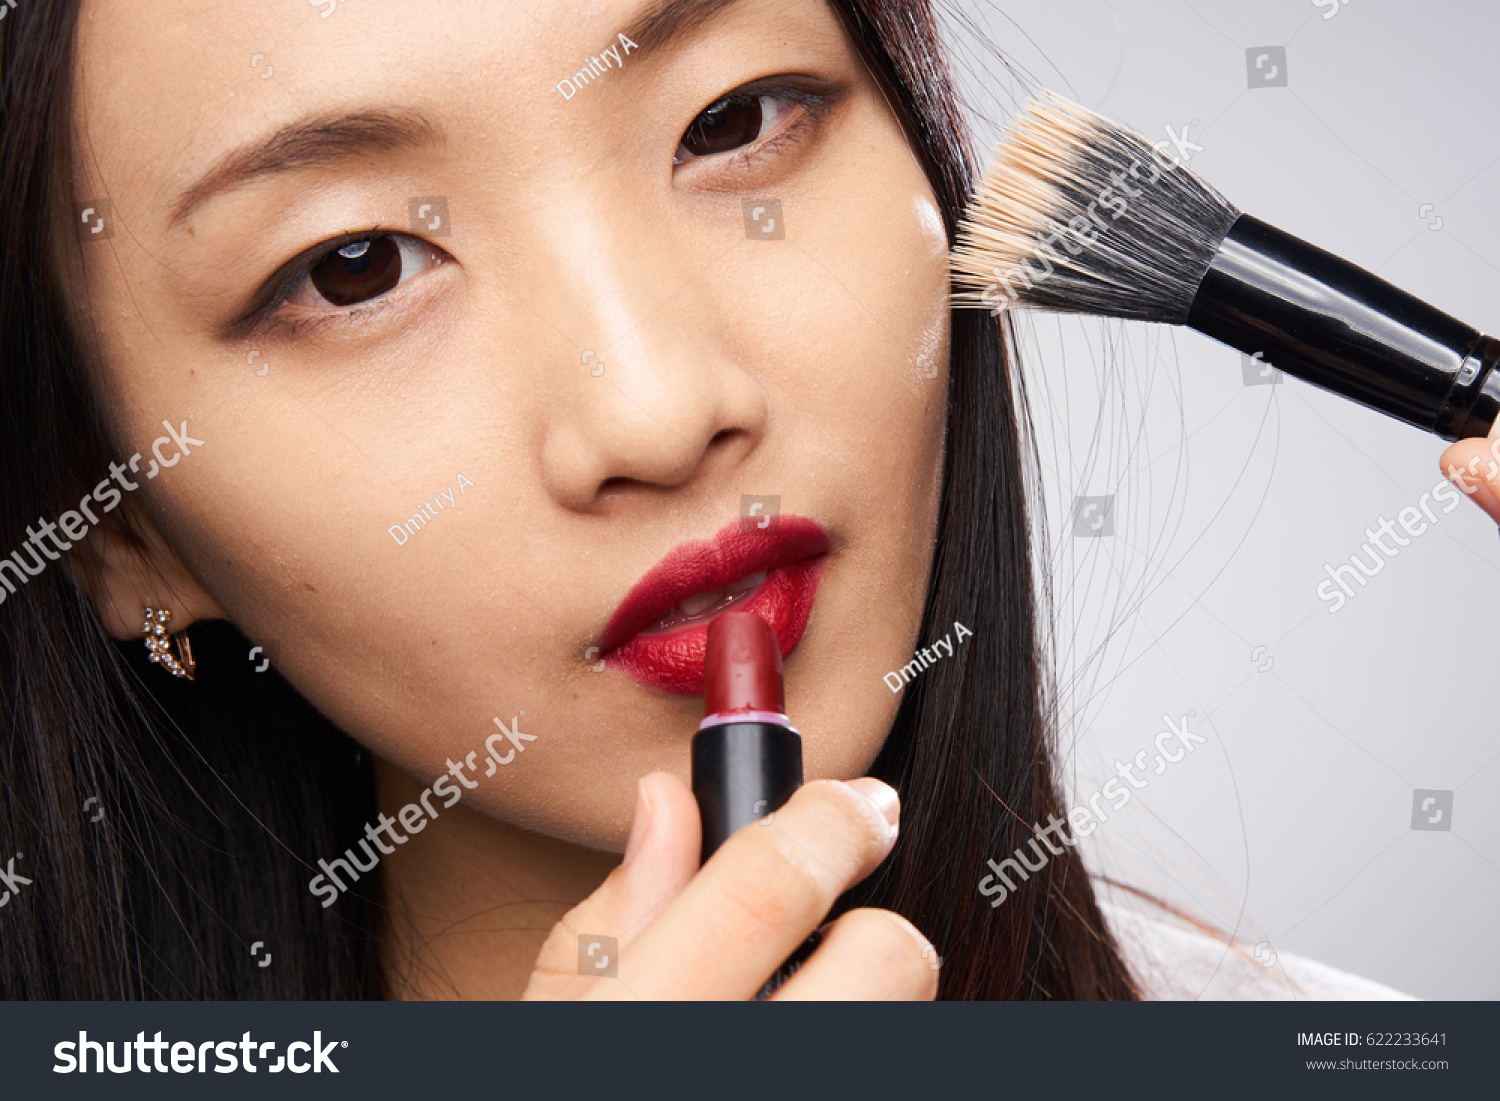 Asian woman on white background red lips makeup brush